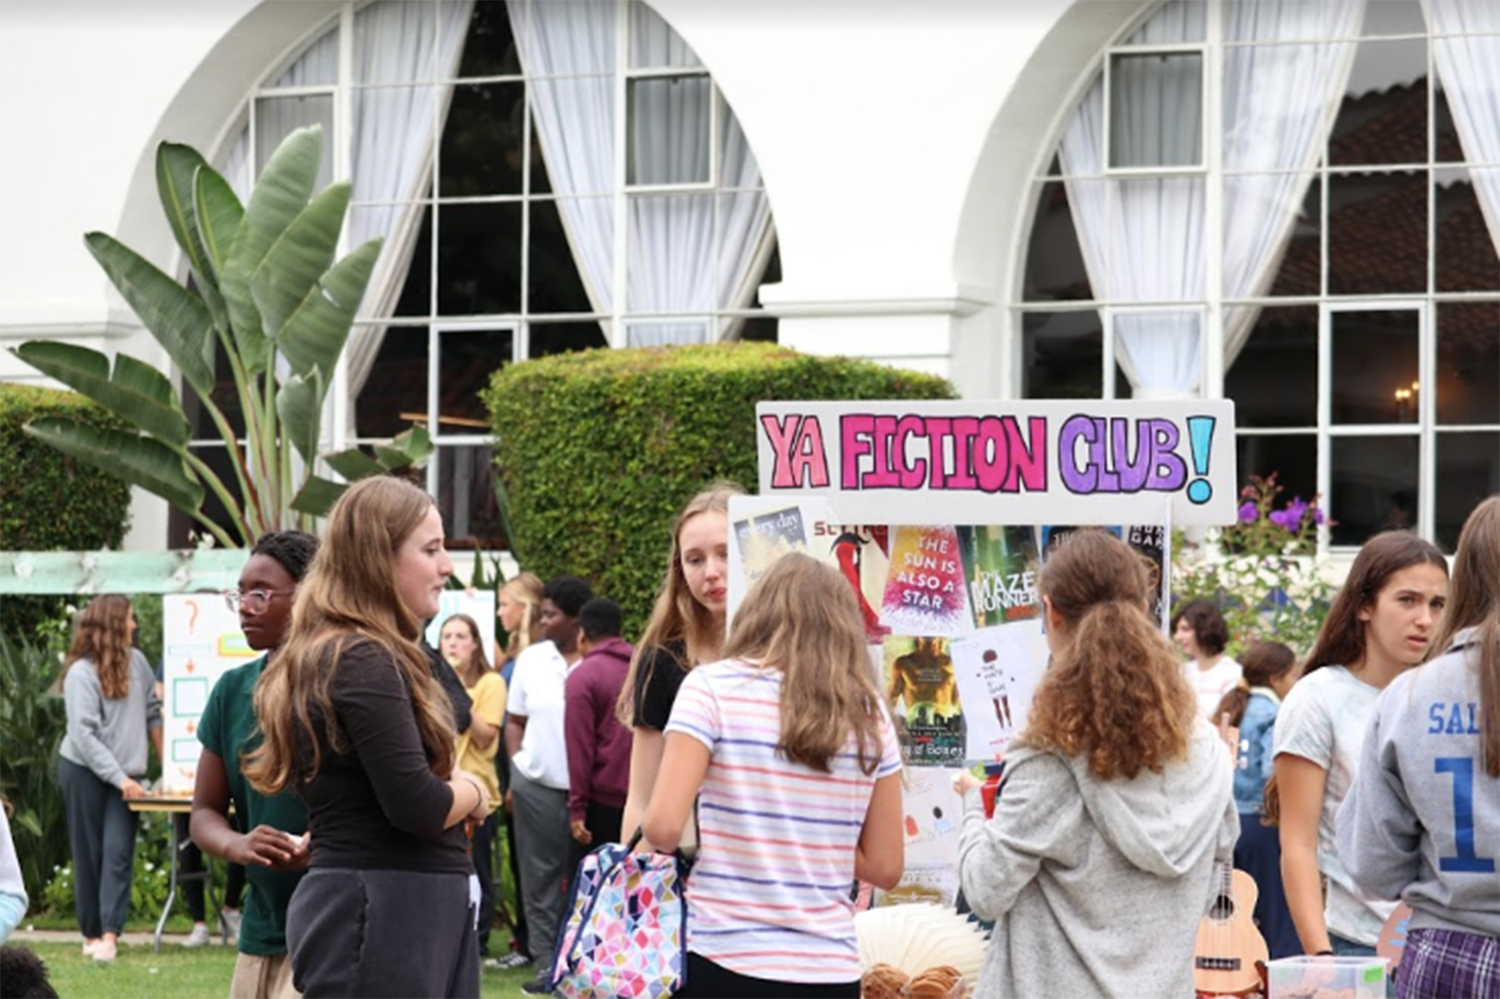 Students gather around the YA Fiction Club booth at the annual club fair. The club fair is held annually in the courtyard in September and spans one lunch period.